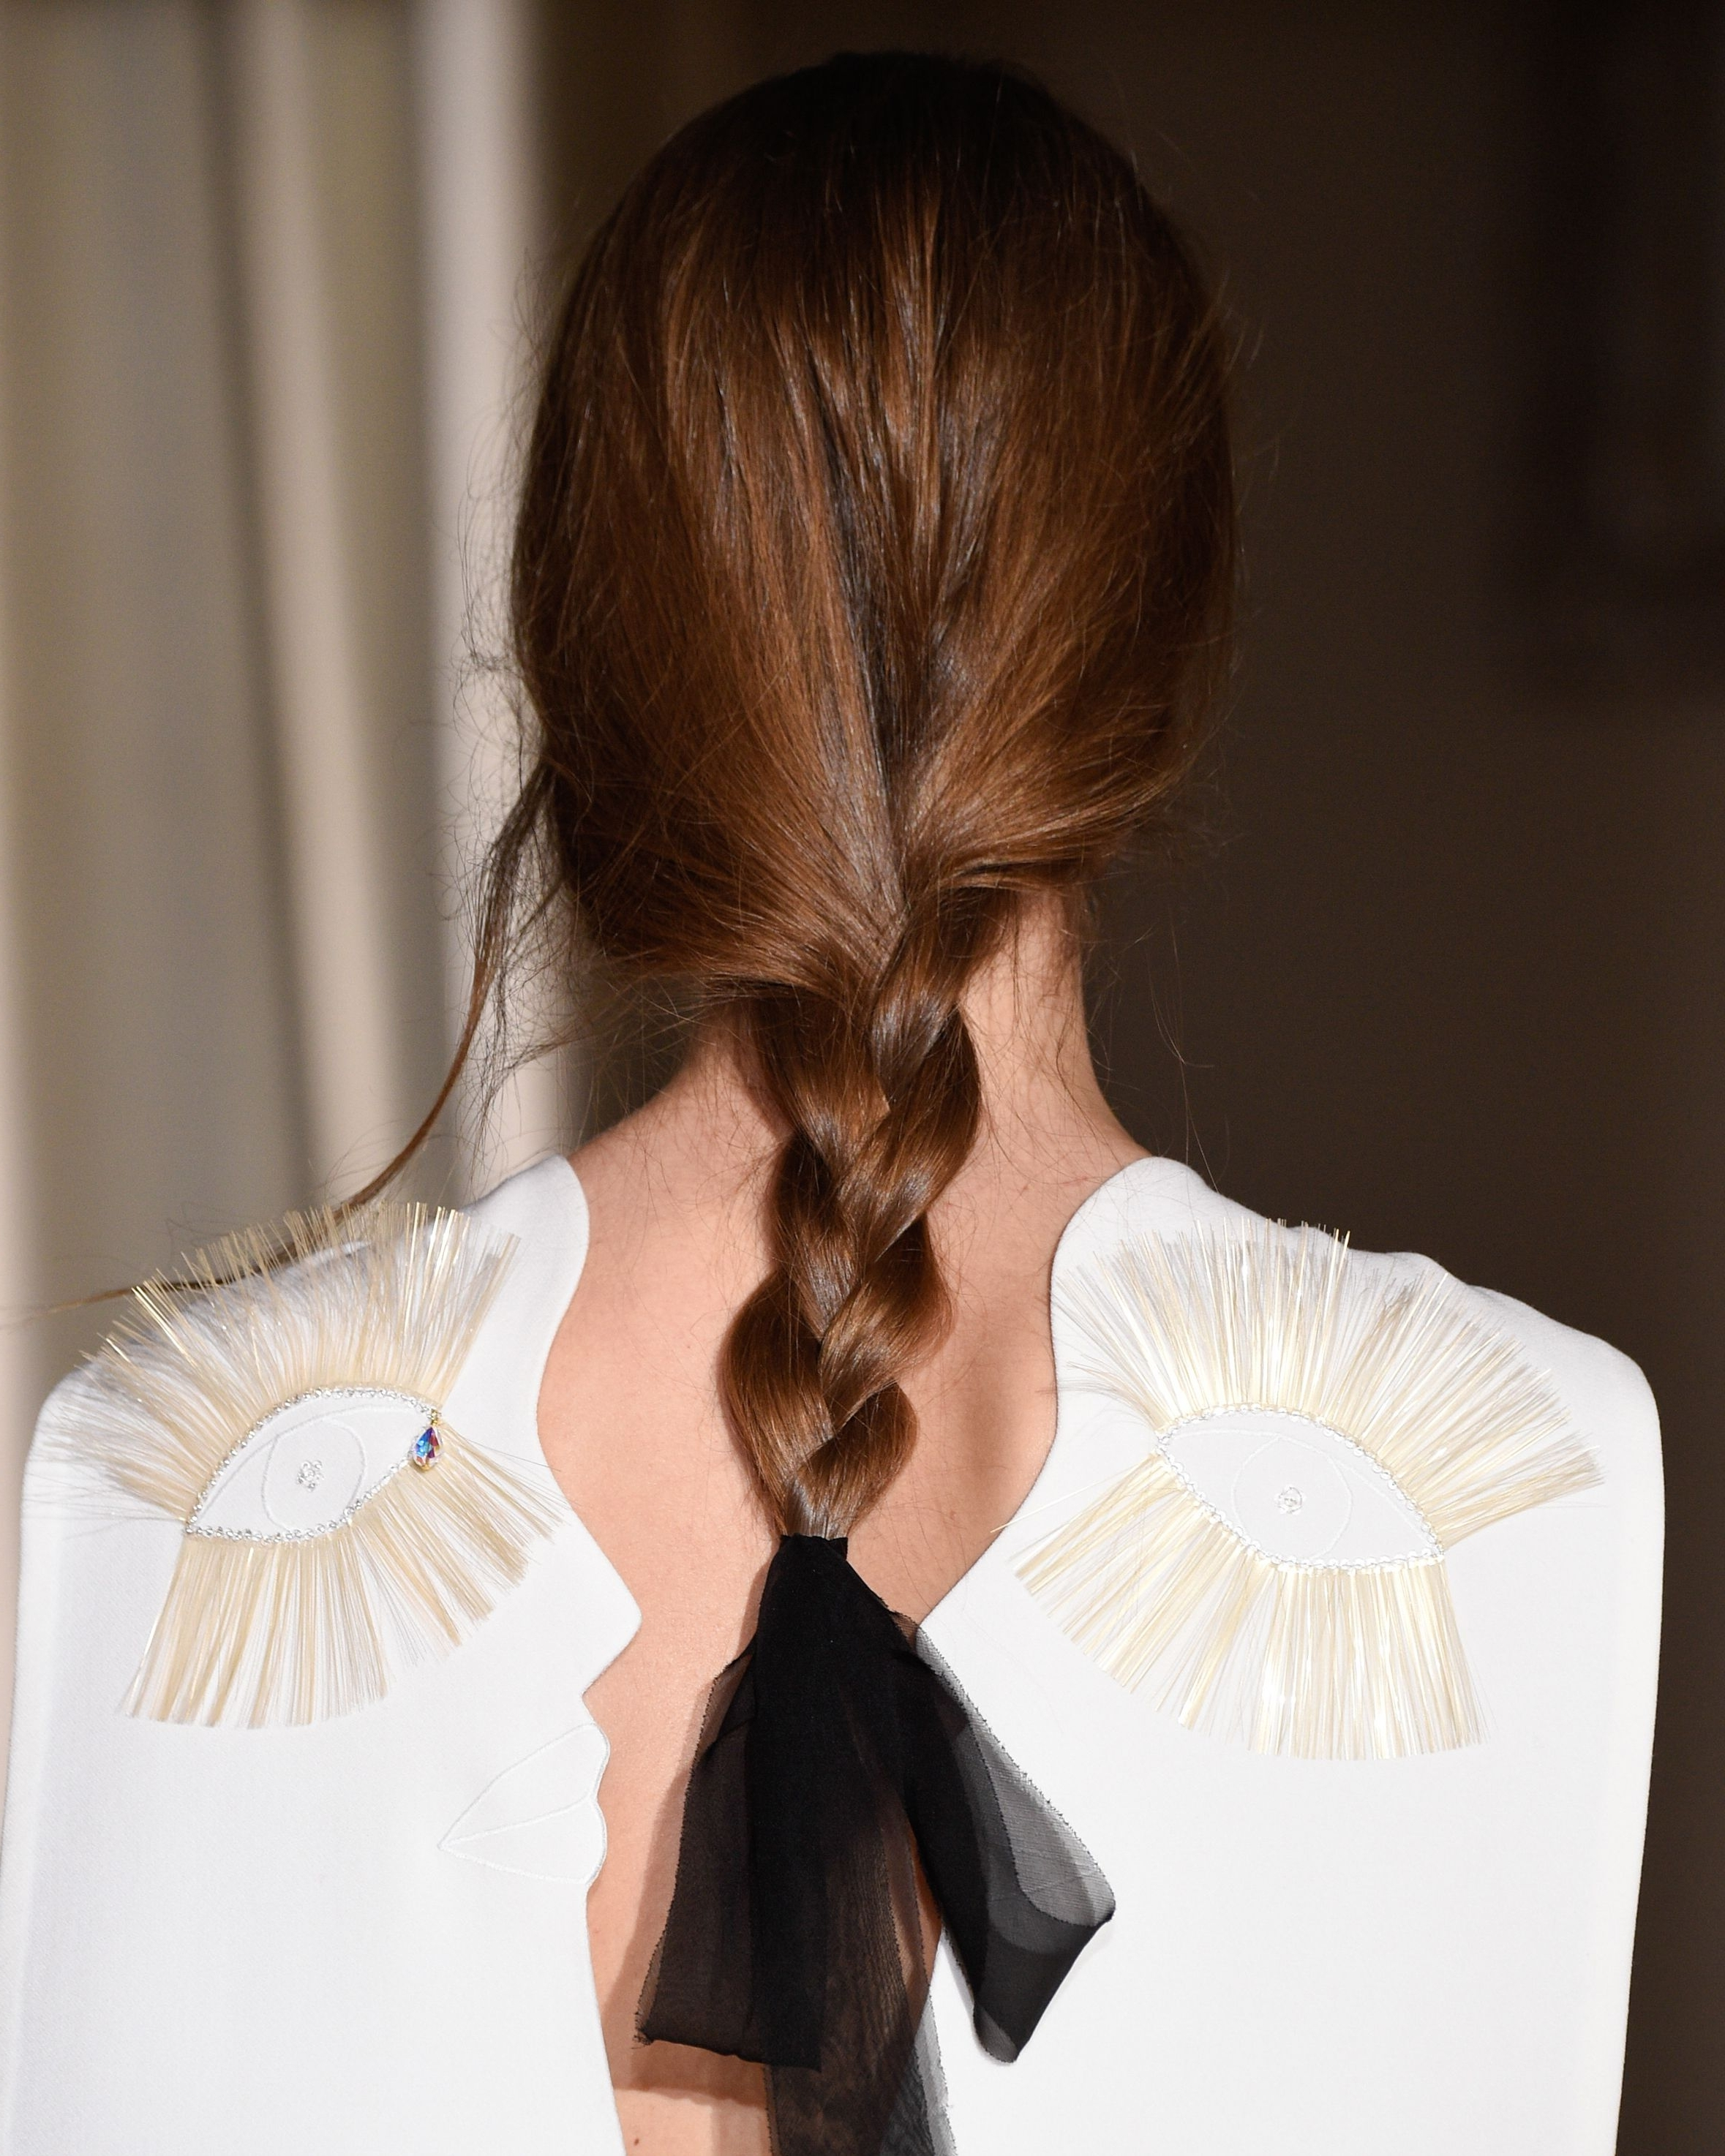 Most Recently Released Classic Bridesmaid Ponytail Hairstyles Within Wedding Hair Inspiration – Wedding Hairstyles For Brides & Bridesmaids (View 14 of 20)